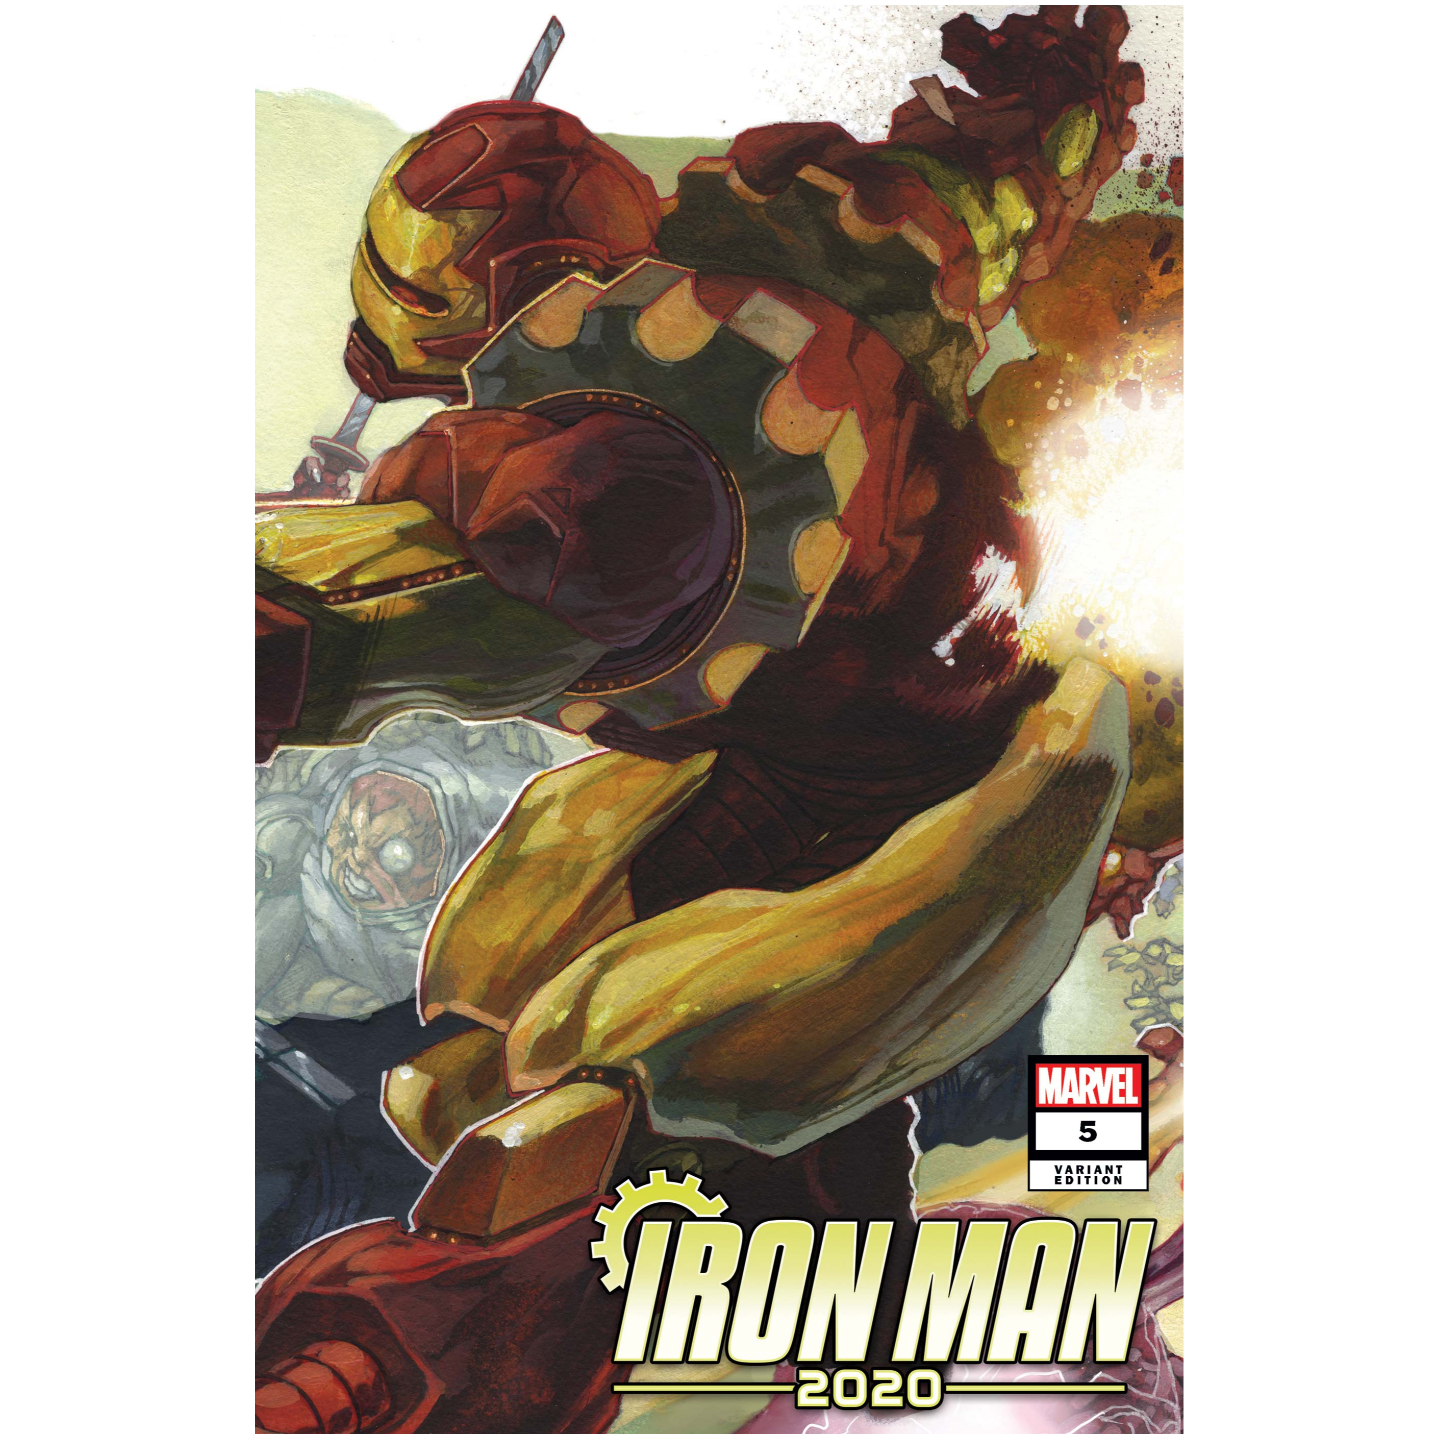 IRON MAN 2020 #5 (OF 6) BIANCHI CONNECTING VAR